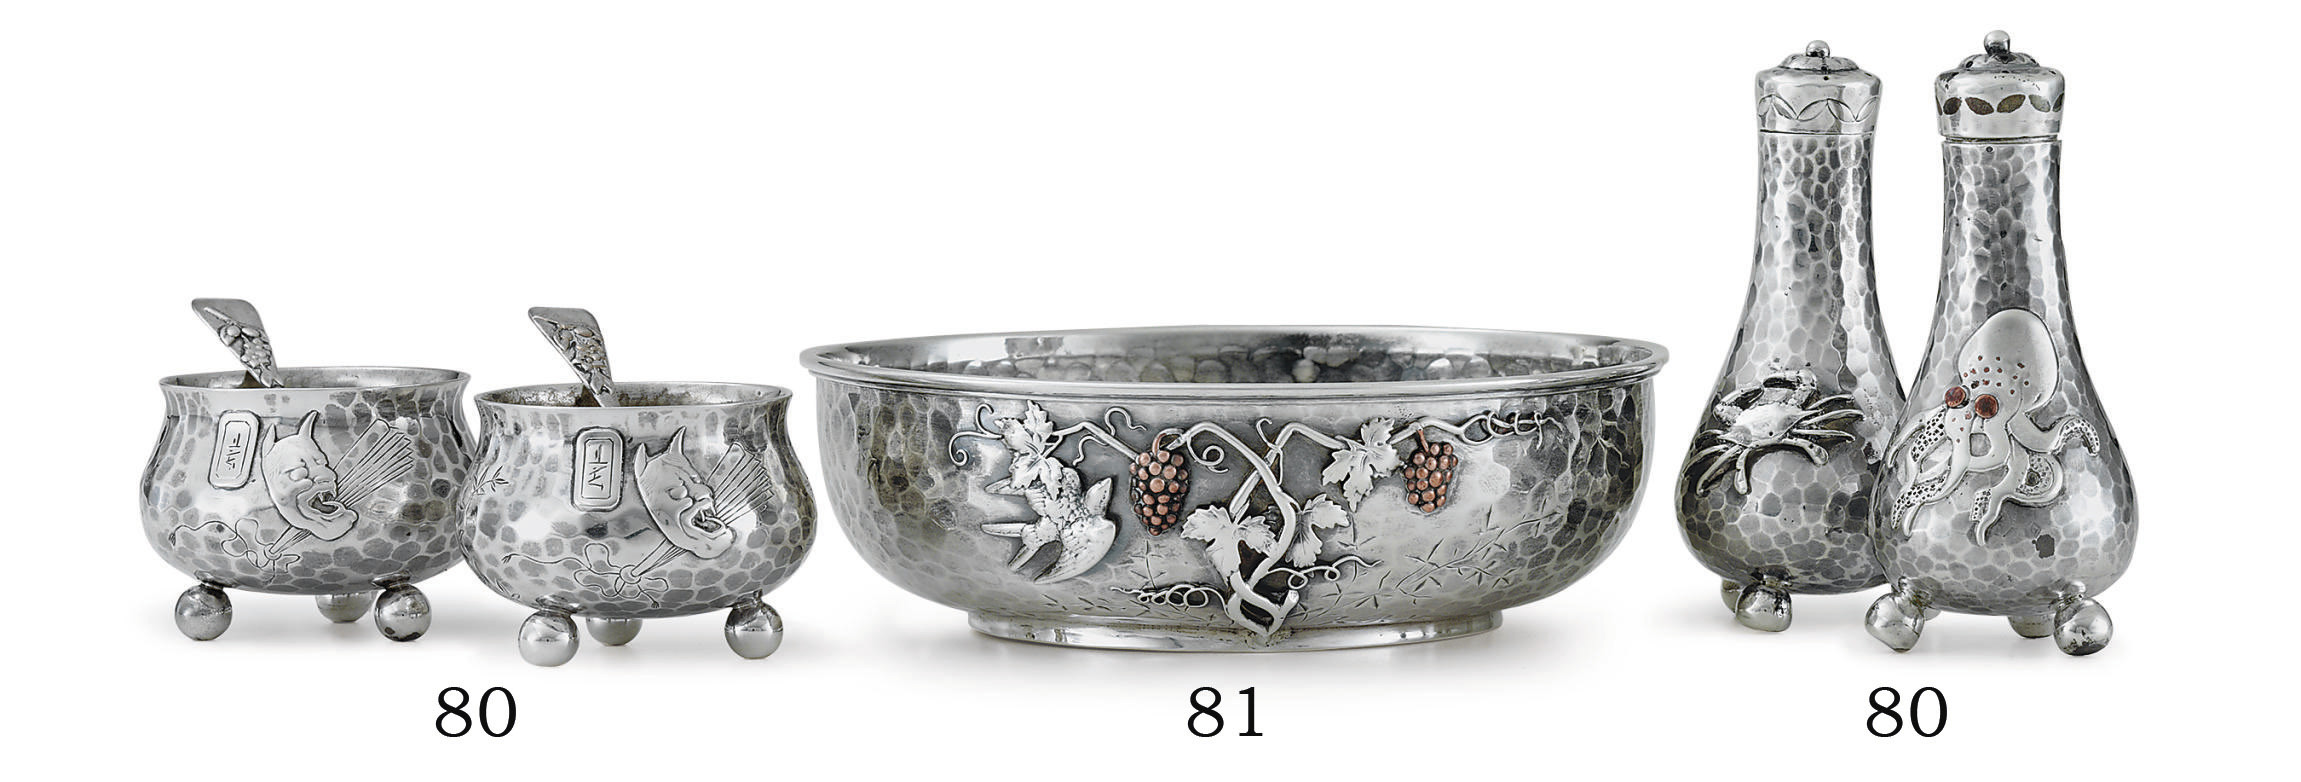 A PAIR OF SILVER AND MIXED-METAL PEPPER CASTERS, SALT CELLARS AND SPOONS